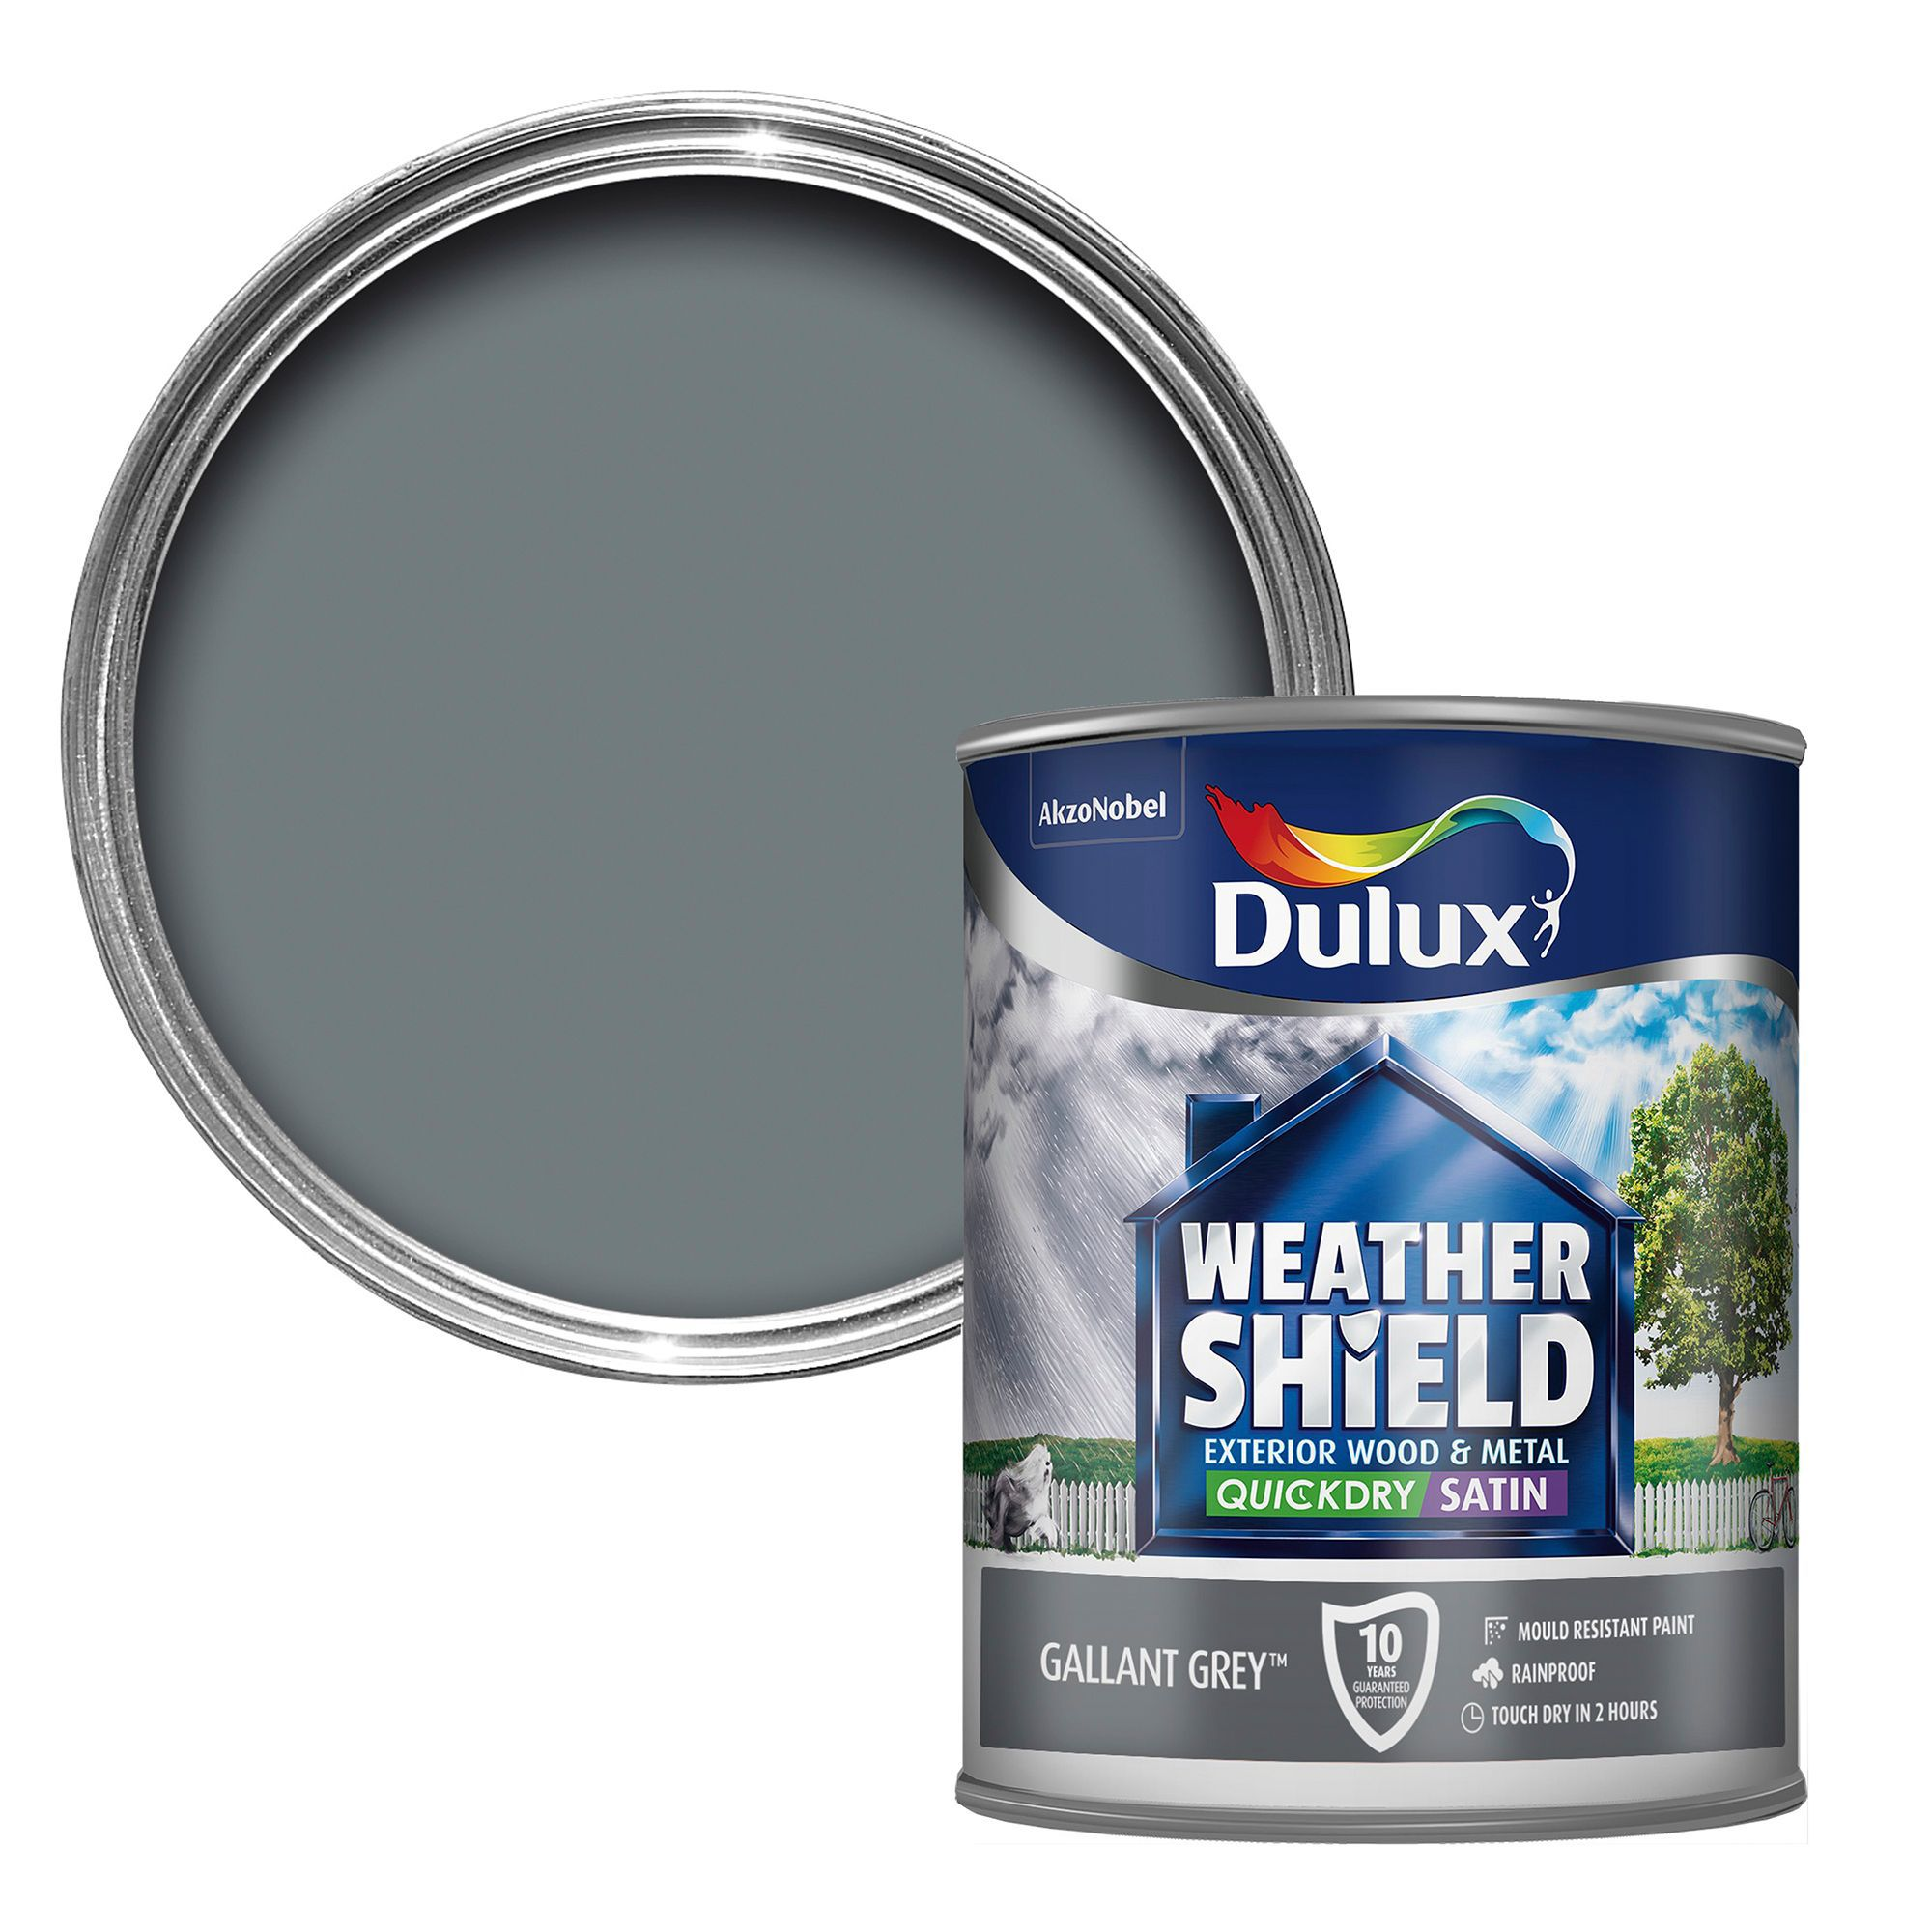 Dulux Weathershield Exterior Gallant Grey Satin Wood Metal Paint 750ml Departments Diy At B Q